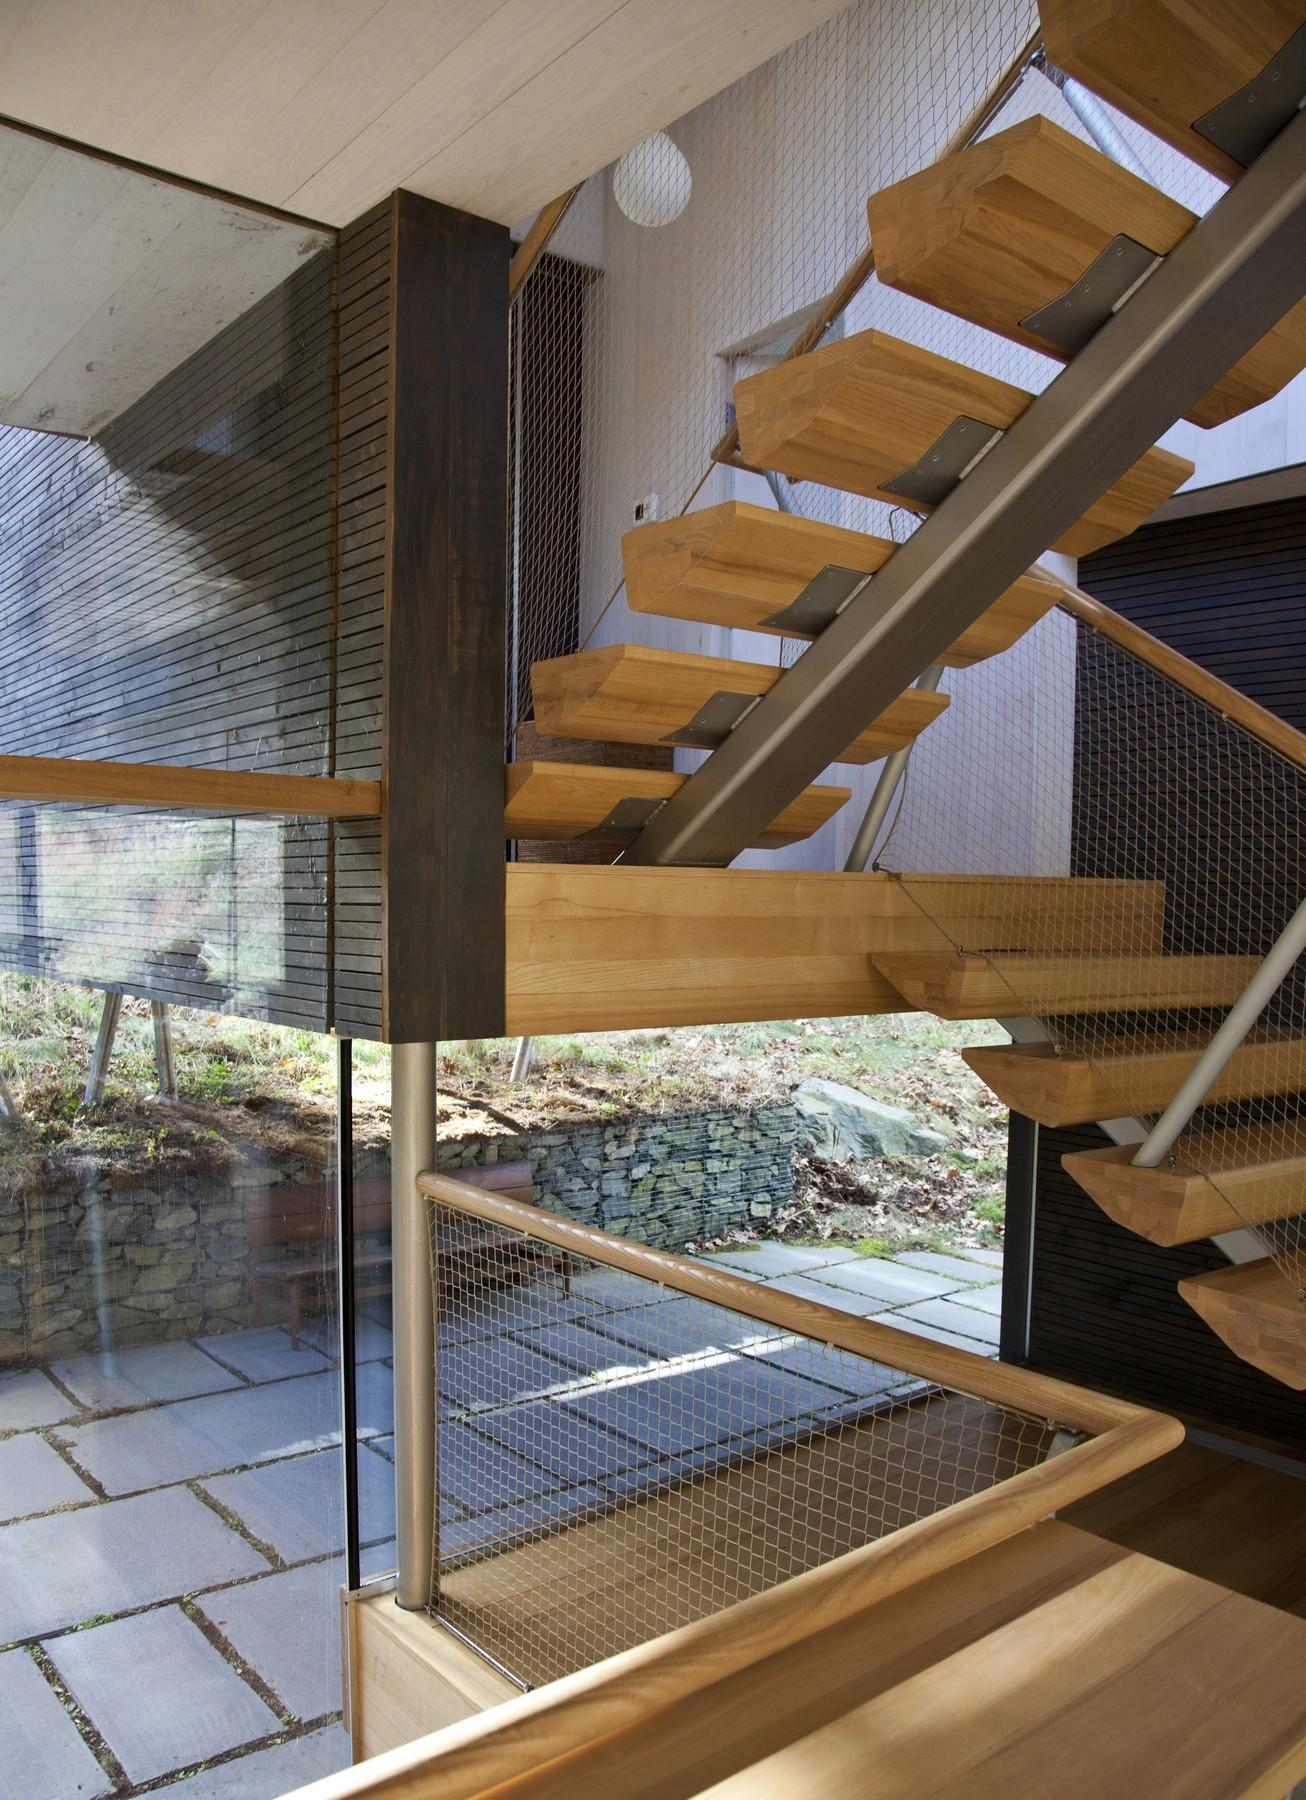 Modern Wood & Metal Stairs, Rural Retreat in Bantam, Connecticut